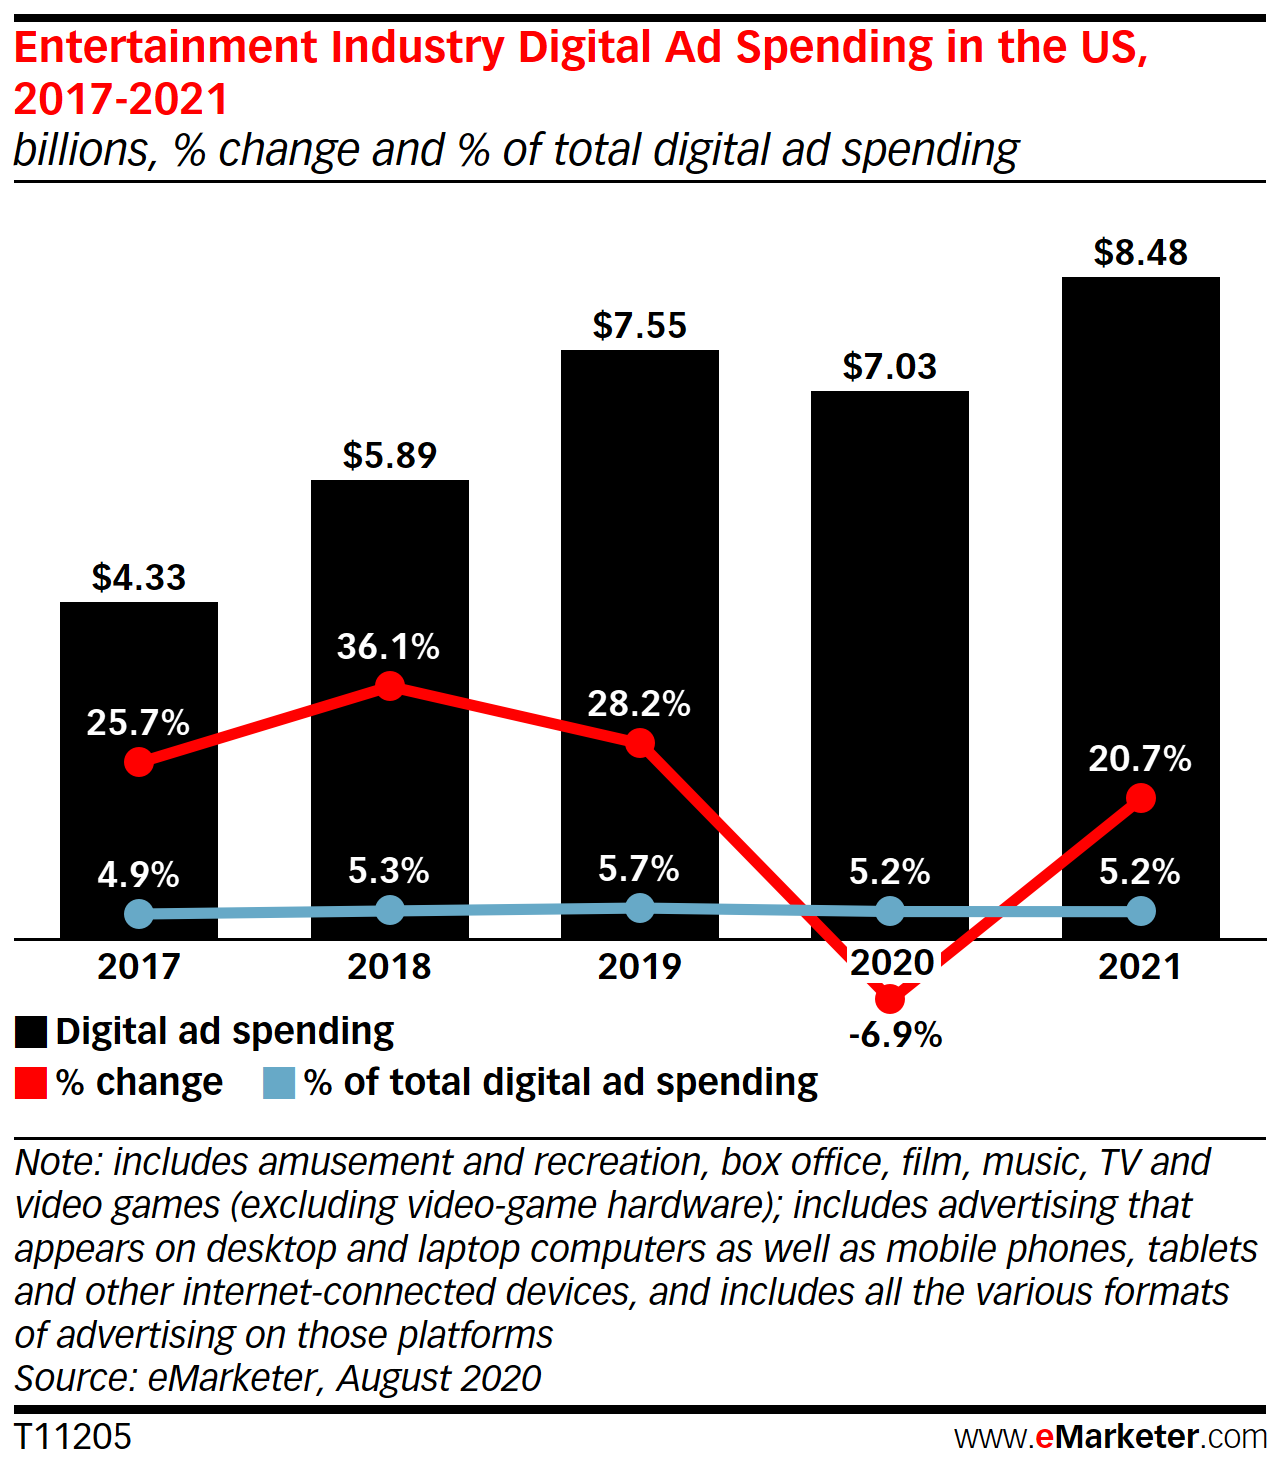 Entertainment Industry Digital Ad Spending in the US, 2017-2021 (billions, % change and % of total digital ad spending)